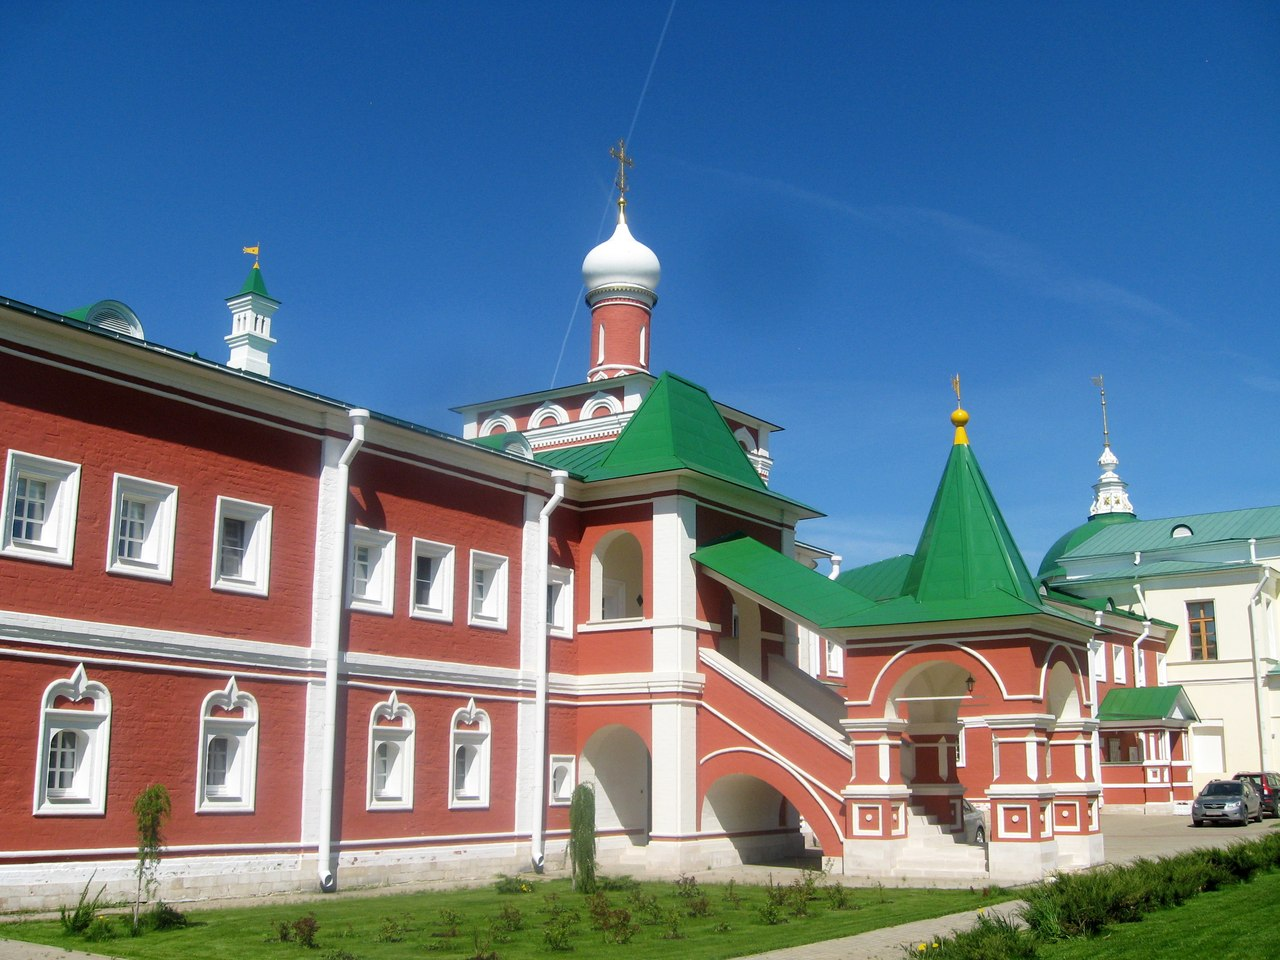 Nikolo-Peshnoshsky monastery. Another fortress of pupils of Sergius of Radonezh monastery, very, monastery, tower, outside, through, monastery, monasteries, side, fortress, because, Radonezh, walls, architecture, fortress, tower, Sergius, Next, simple, towers